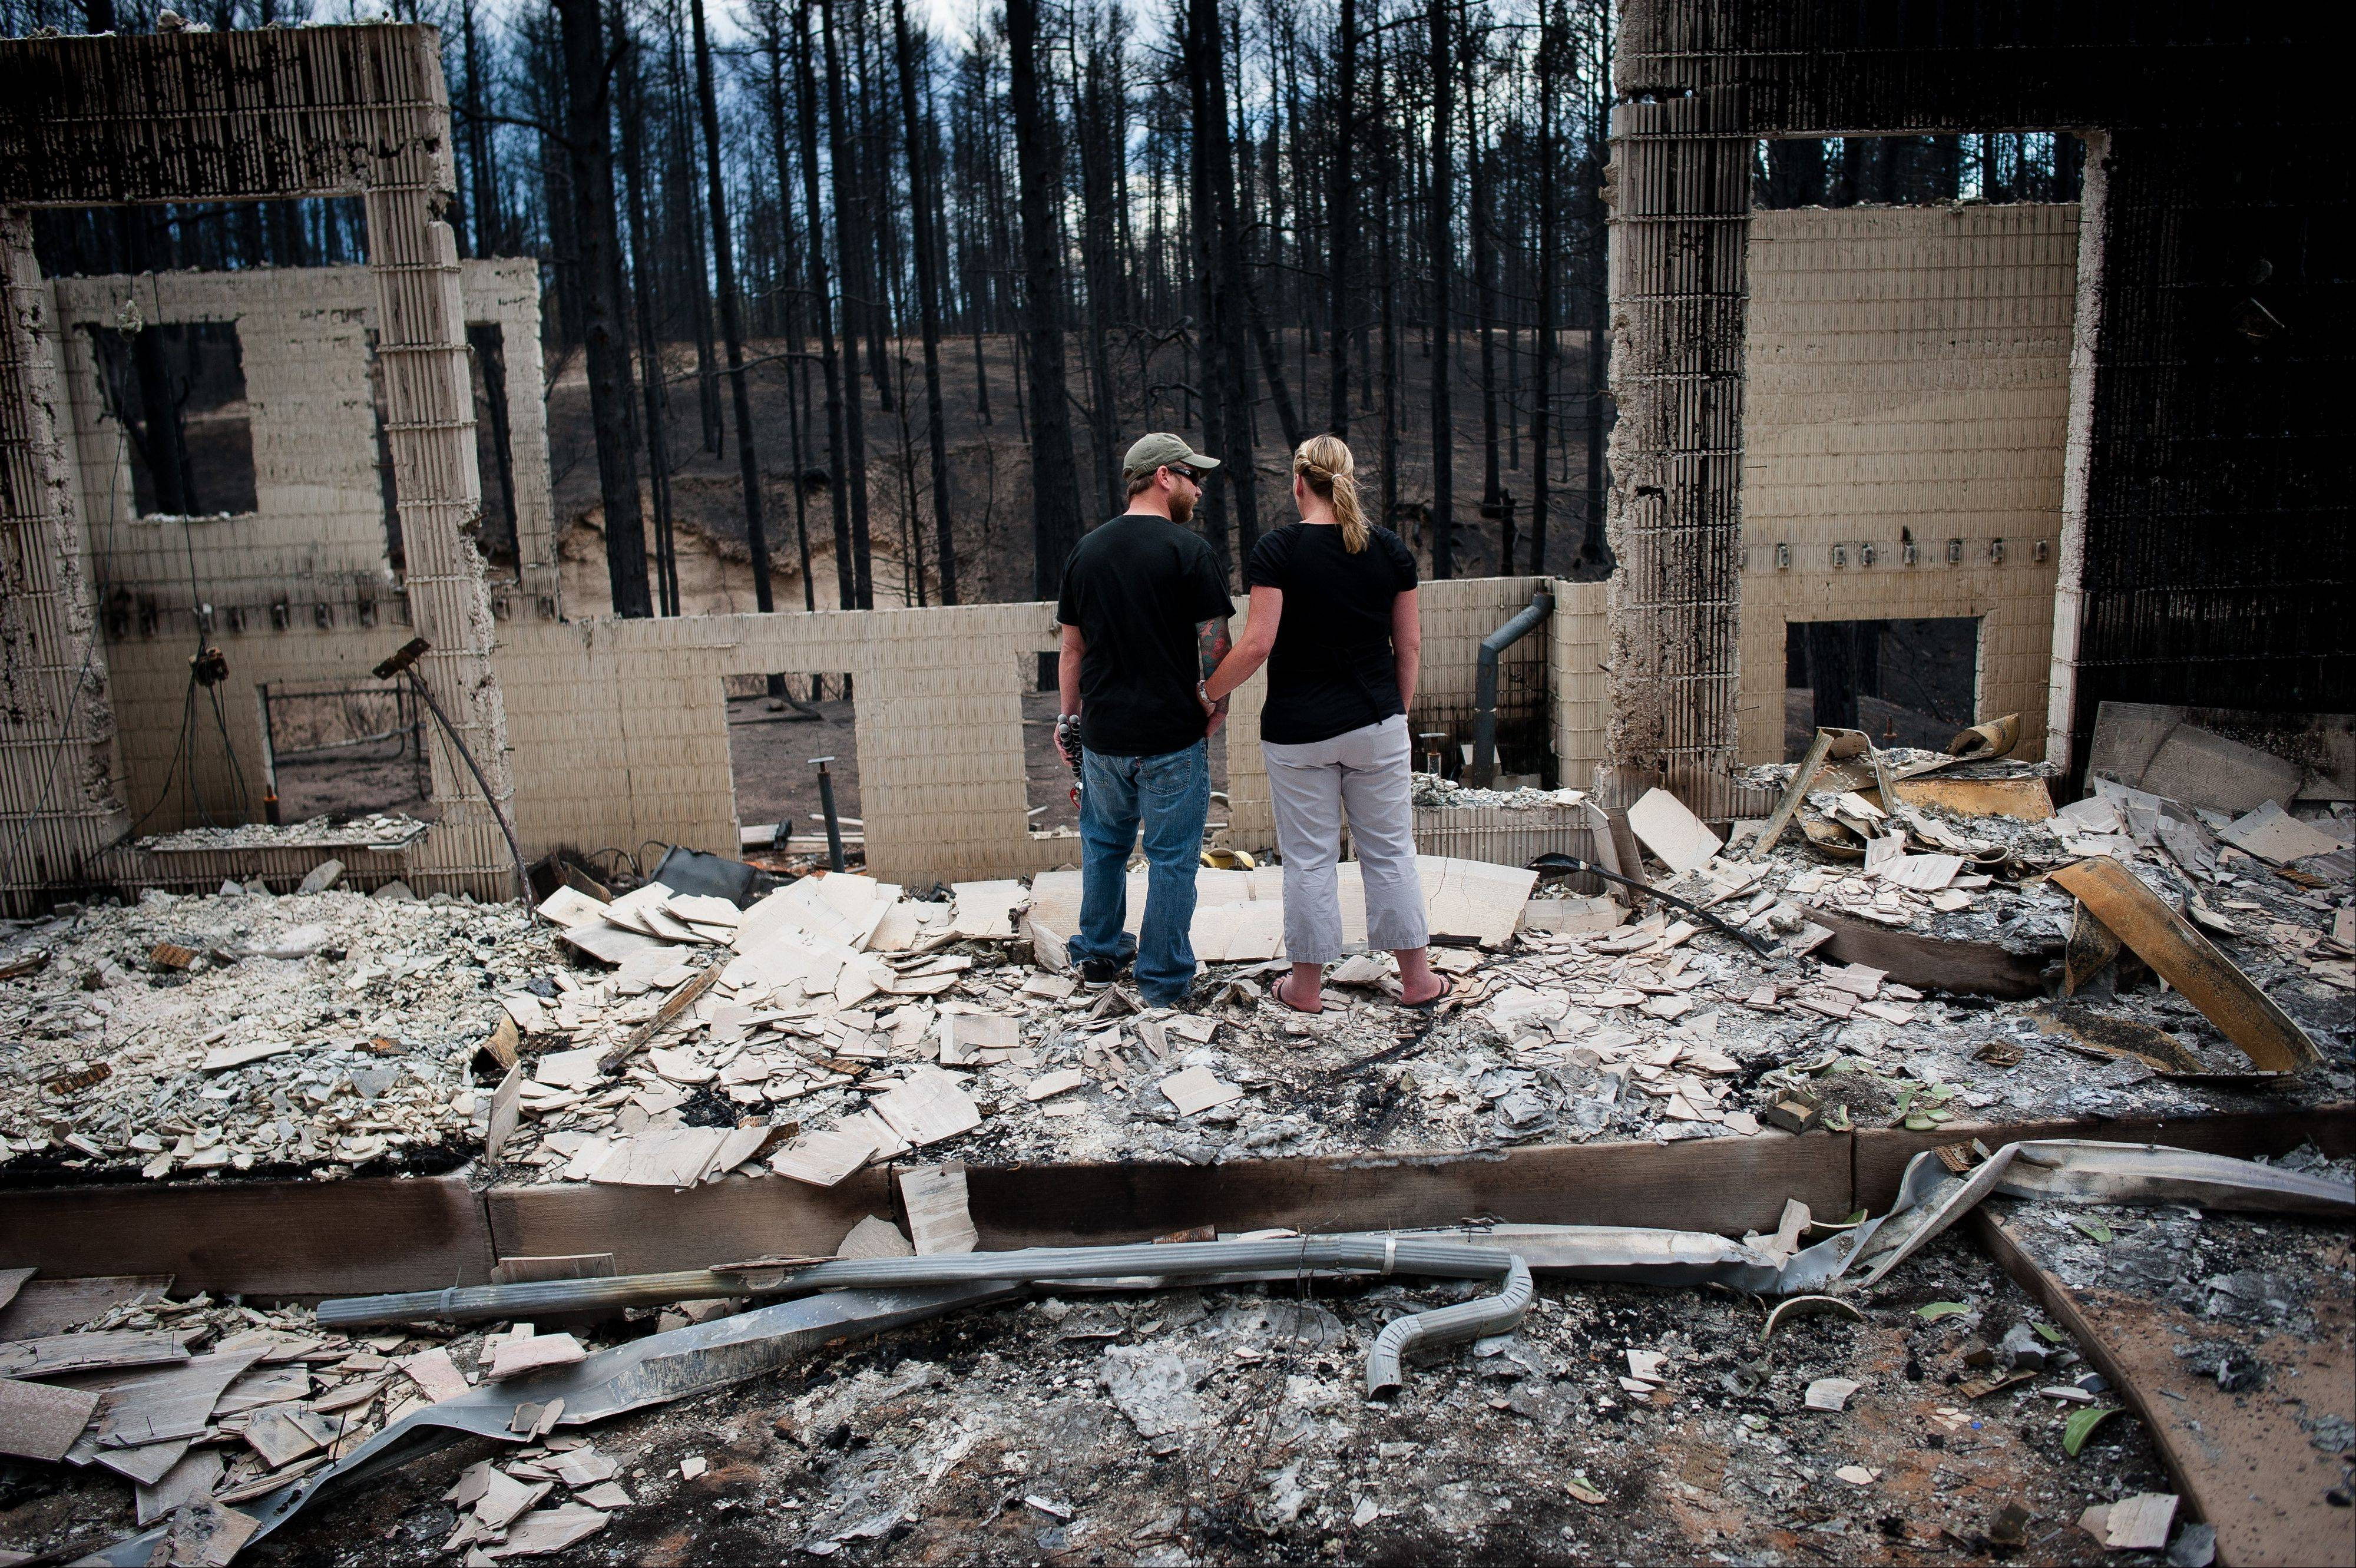 Jeremy and Kelly Beach look into the remains of their home off Ravine Drive, Tuesday, June 18, 2013, in Colorado Springs, Colo. Residents were allowed back into the area for a short period of time to view the properties that sustained the most damage from the fire. The Black Forest Fire, the most destructive wildfire in Colorado history, has destroyed 502 homes and charred more than 22 square miles. It was 85 percent contained Tuesday.